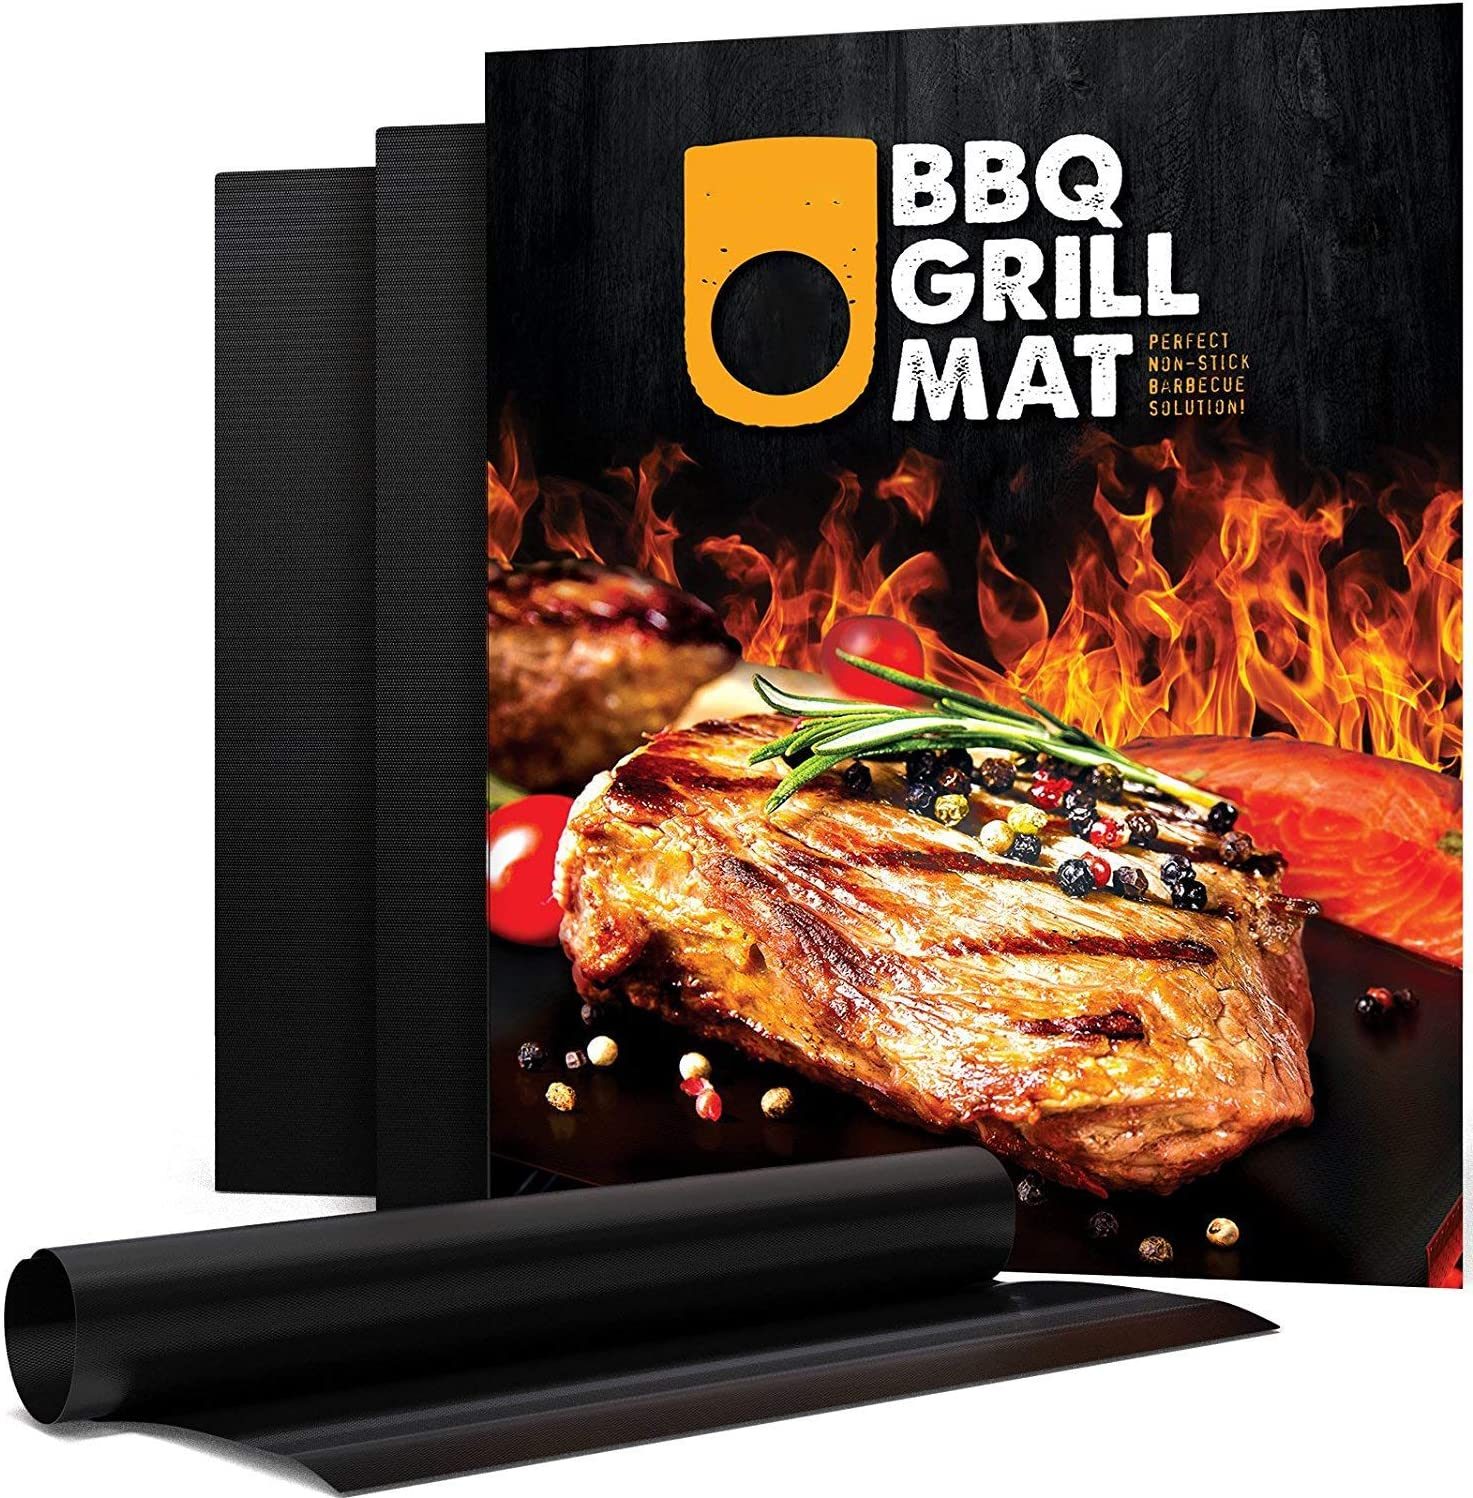 Grill Mat Set of 5 - USA Brand 100% Reusable Non-Stick Oven Toaster BBQ Grill Mats Heavy Duty Dish Washer Safe - Safe on Gas, Electric, Charcoal, Stove Top 16x20-inch Black 3 Month Warranty